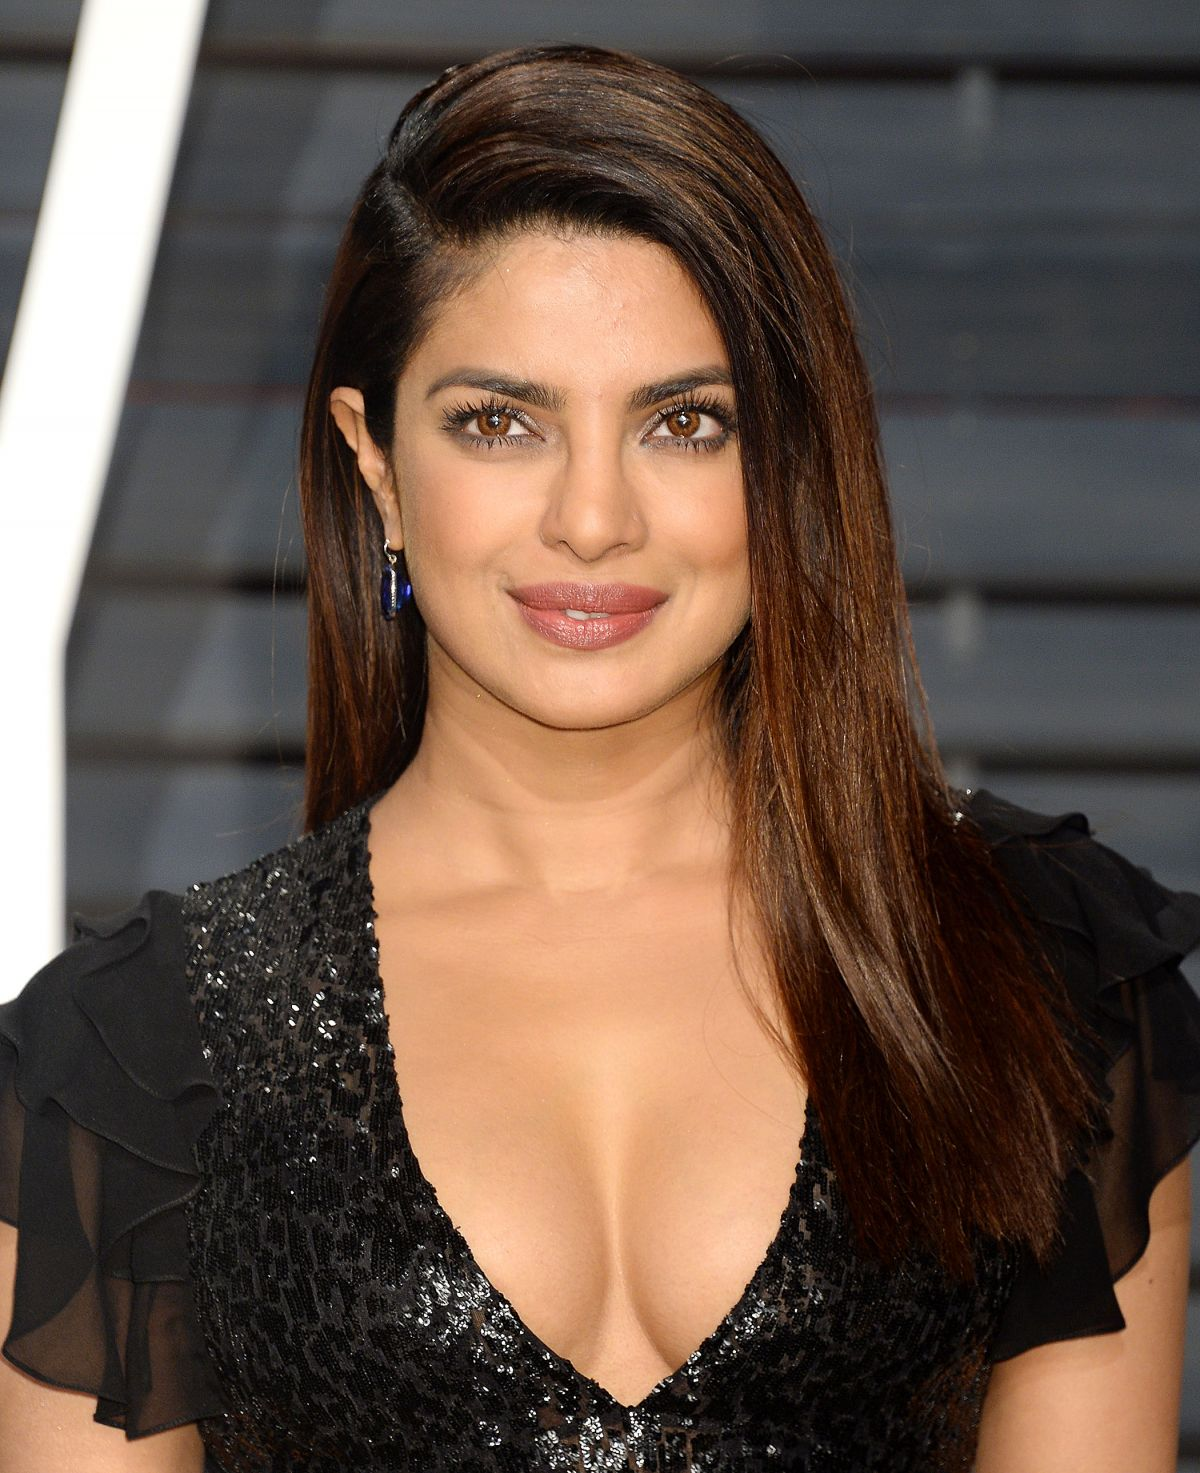 priyanka chopra - photo #11